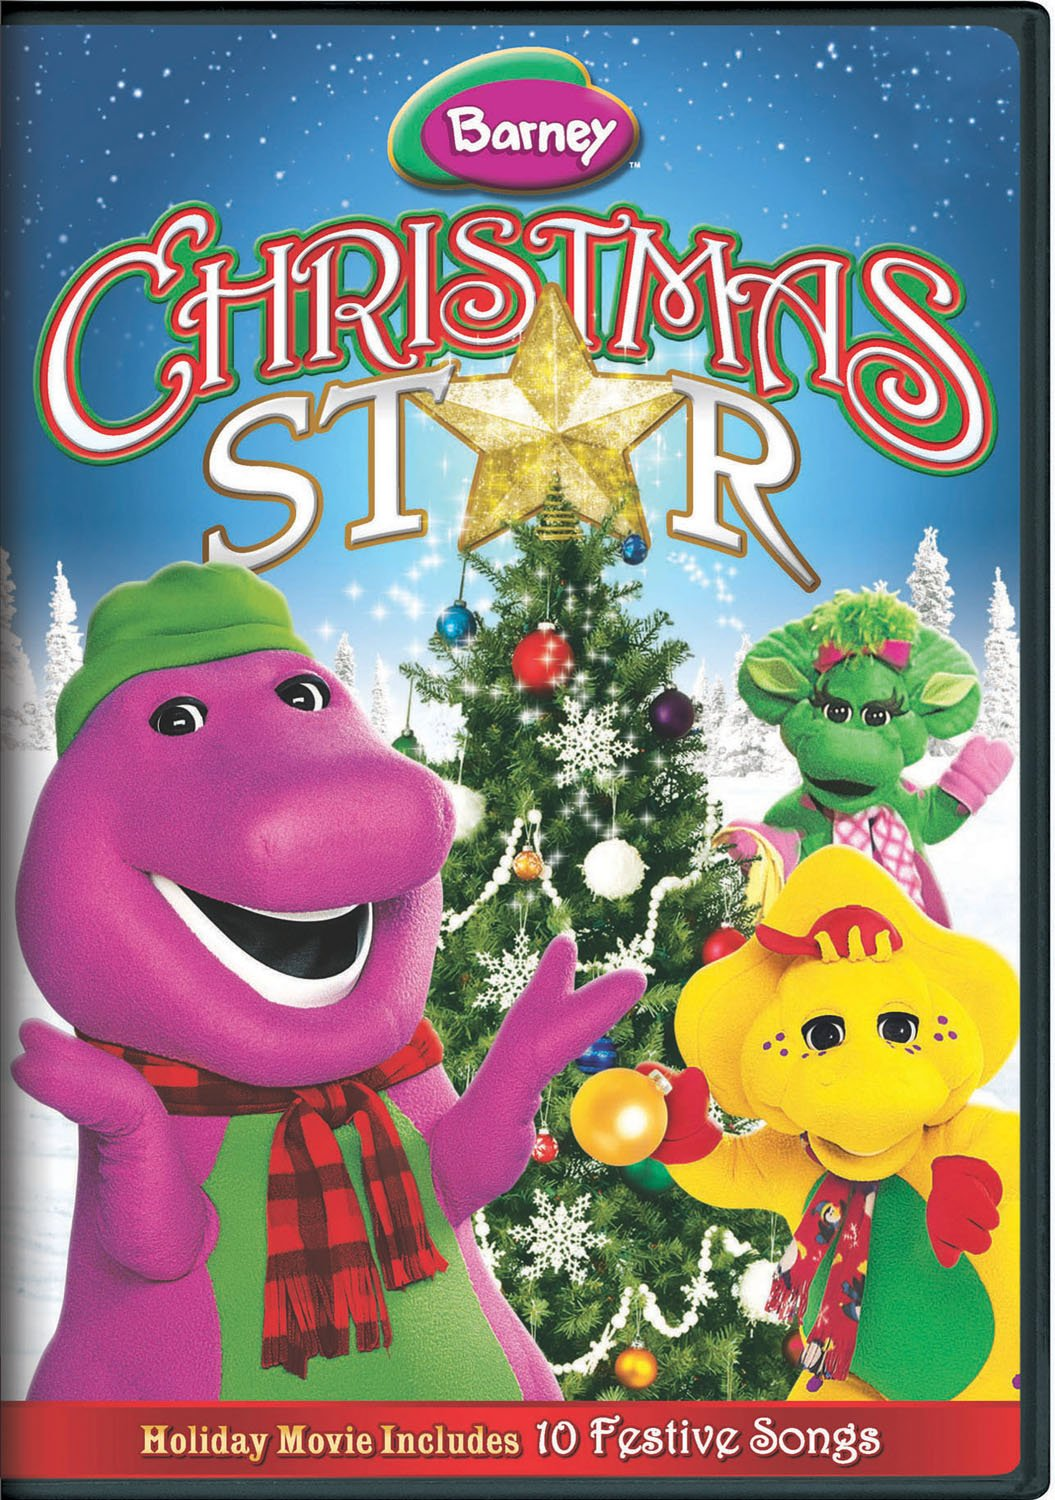 Amazon.com: Barney: Christmas Star: Carey Stinson, Tim Dever, Jeff ...